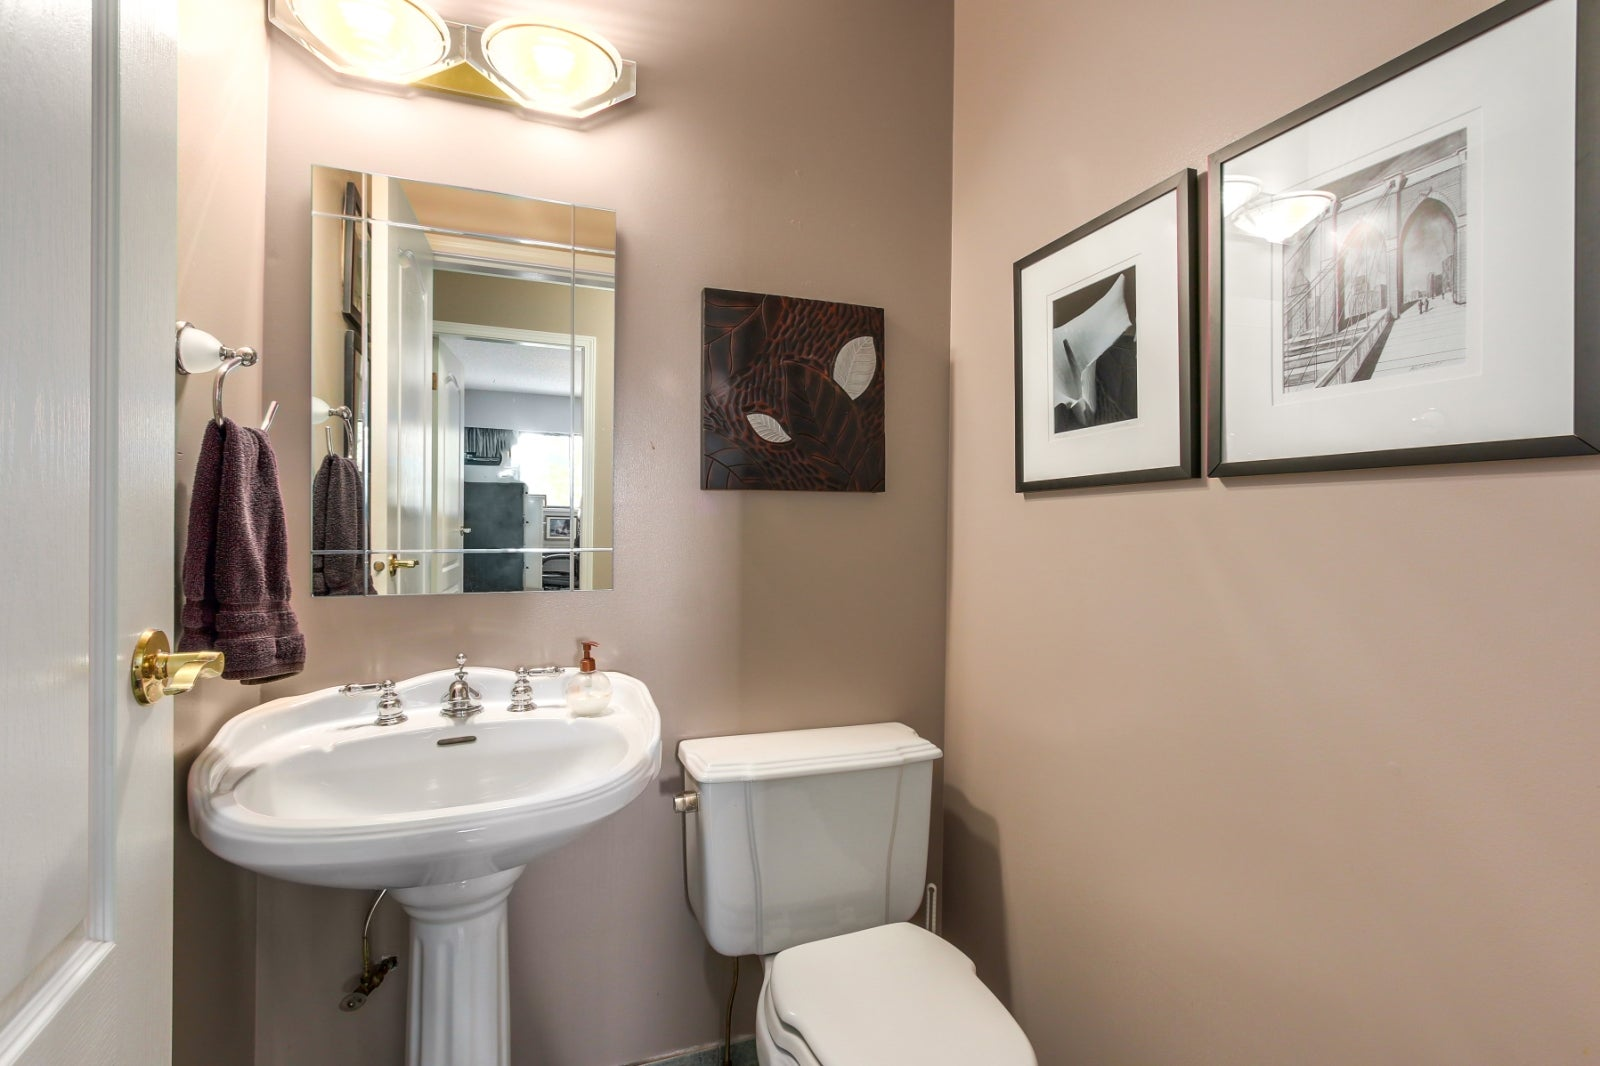 4678 CARSON STREET - South Slope House/Single Family for sale, 5 Bedrooms (R2162406) #14